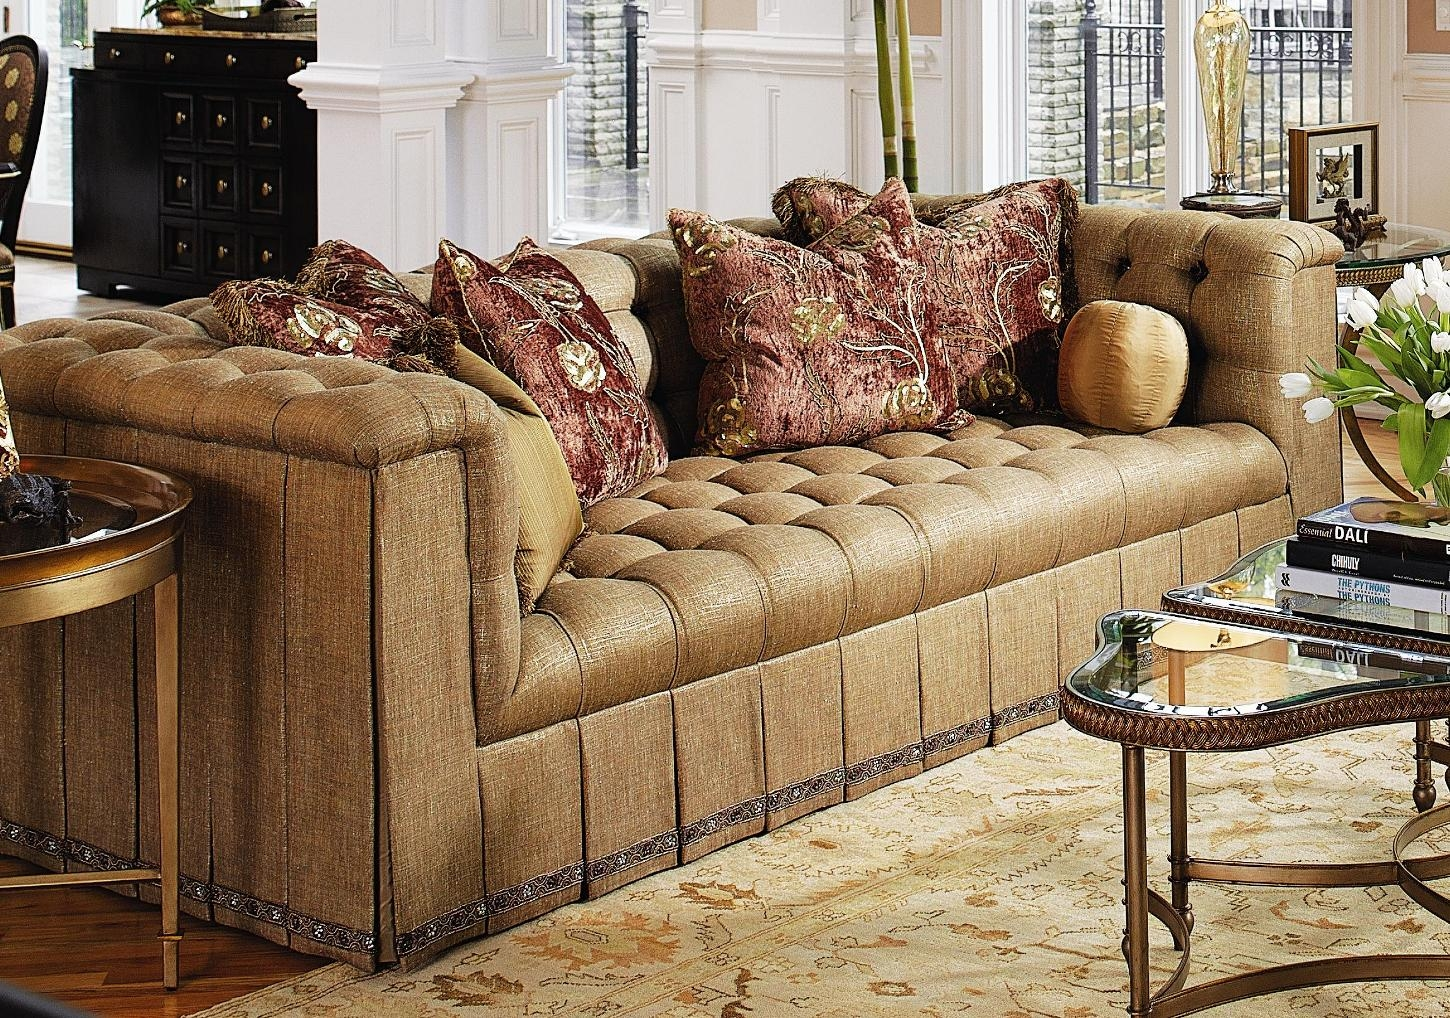 SOFA, COUCH U0026 LOVESEAT Classy Sofa, Great Colors, High Quality, Lost Look